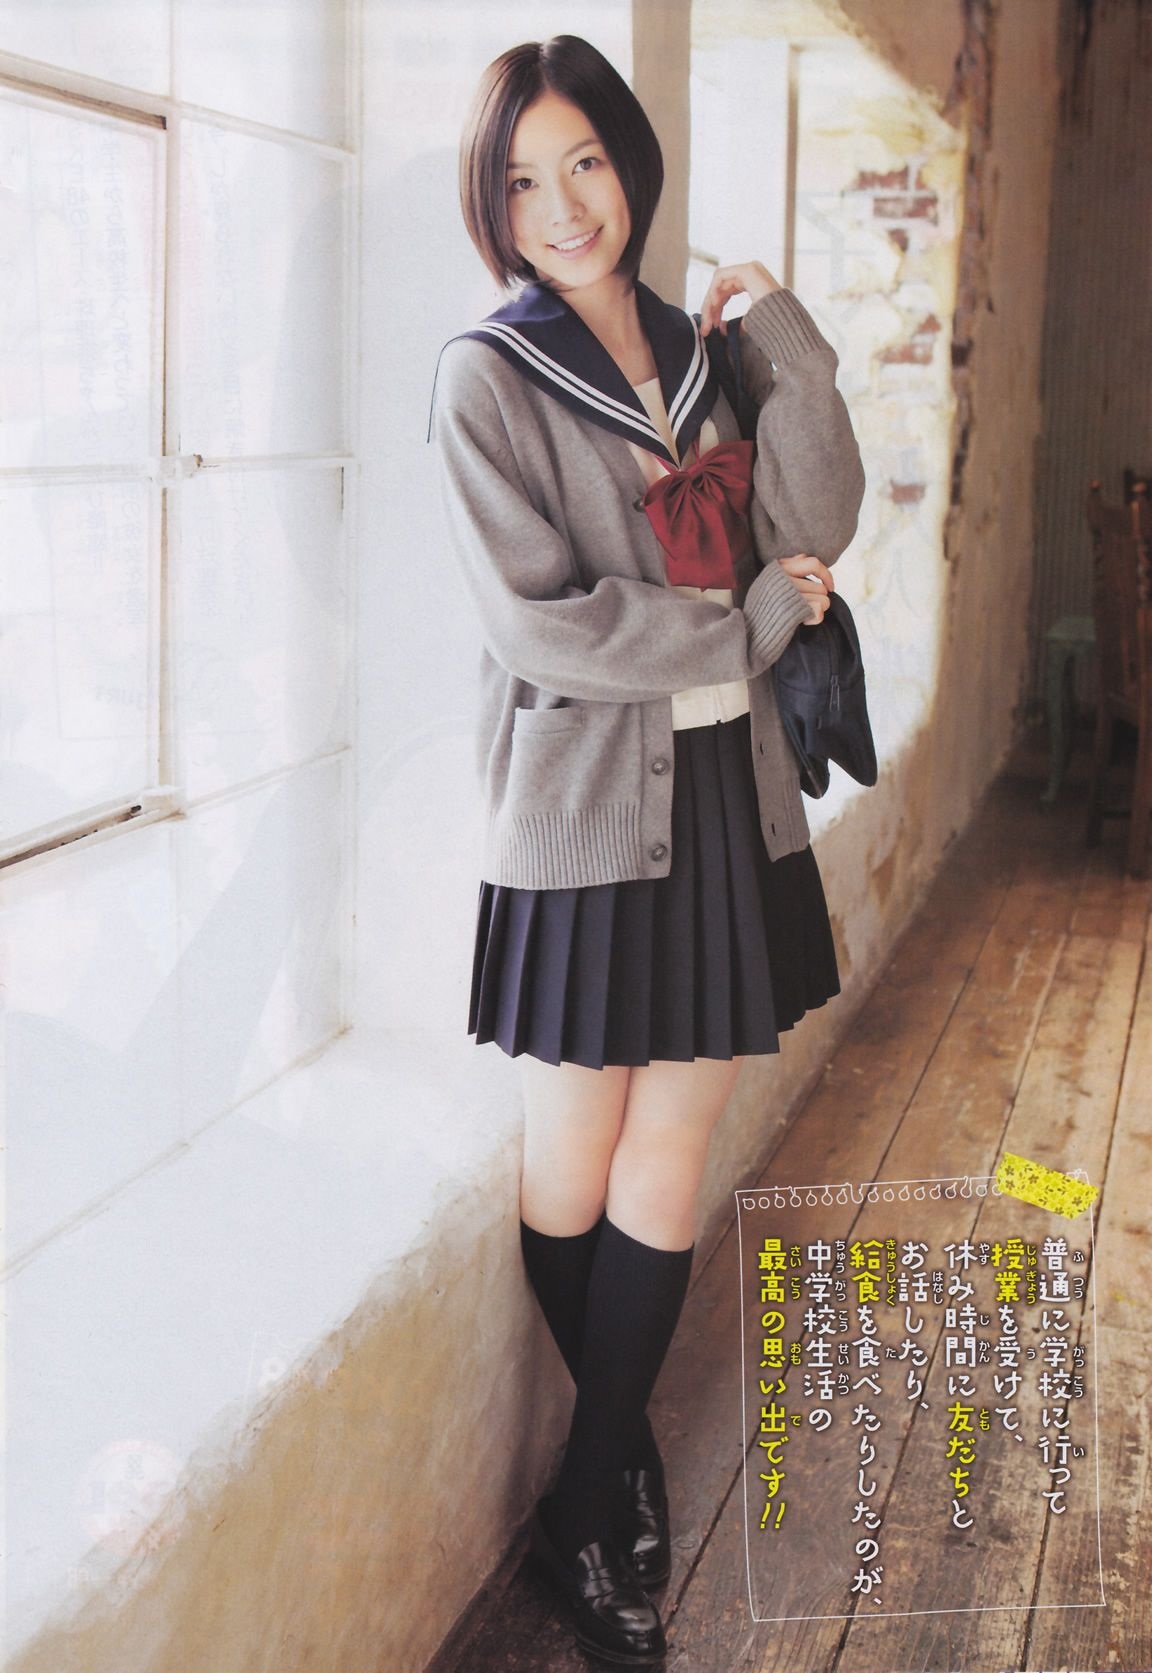 Prep school girl outfit-1733